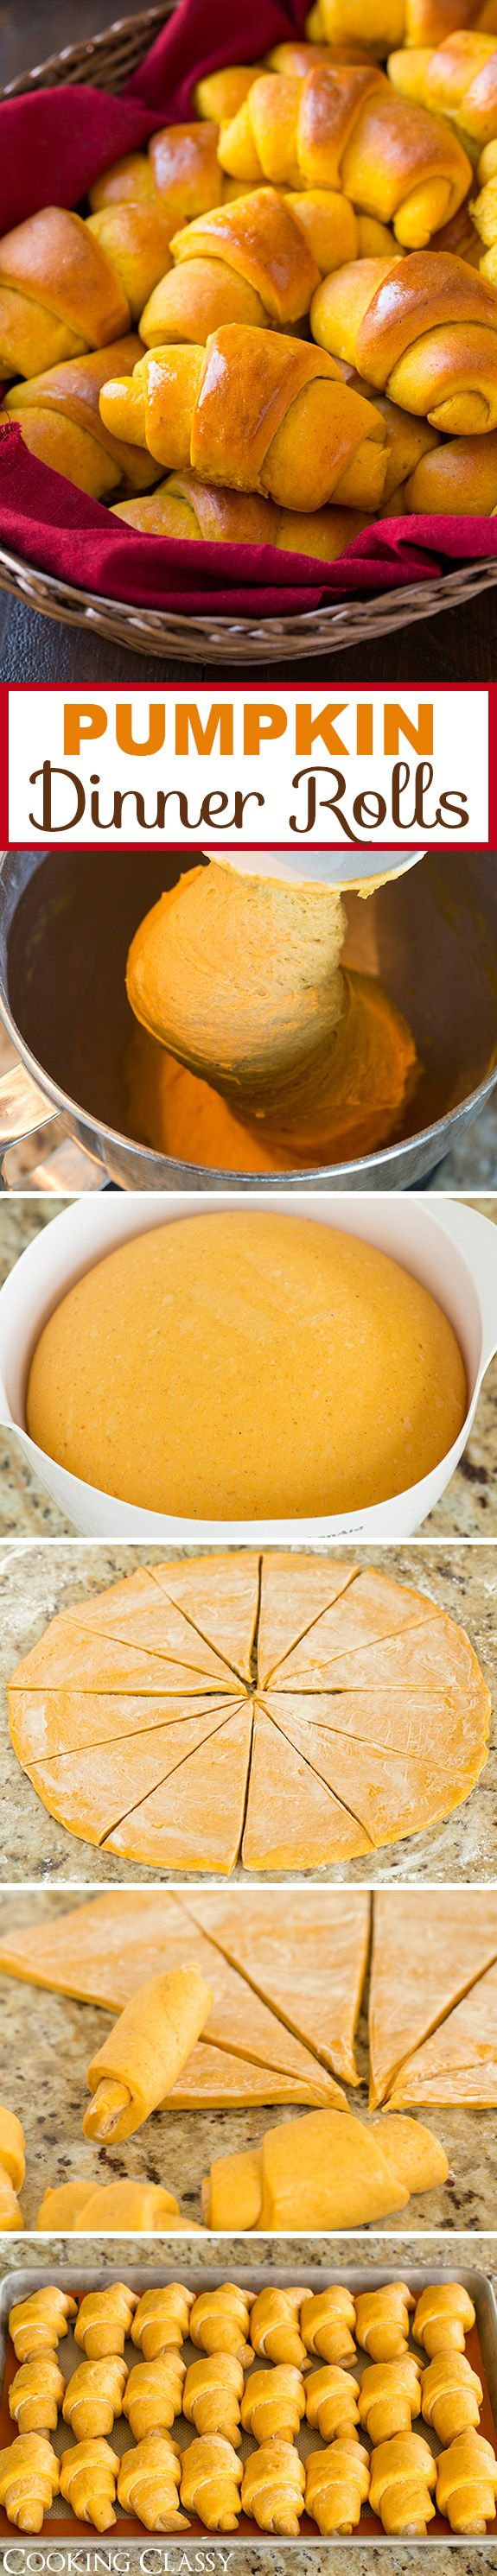 Pumpkin Dinner Rolls - A THANKSGIVING MUST! These are soft and fluffy and they have the perfect amount of spice. Love the pumpkin flavor and beautiful natural color. Be sure to make the cinnamon honey butter with them too!